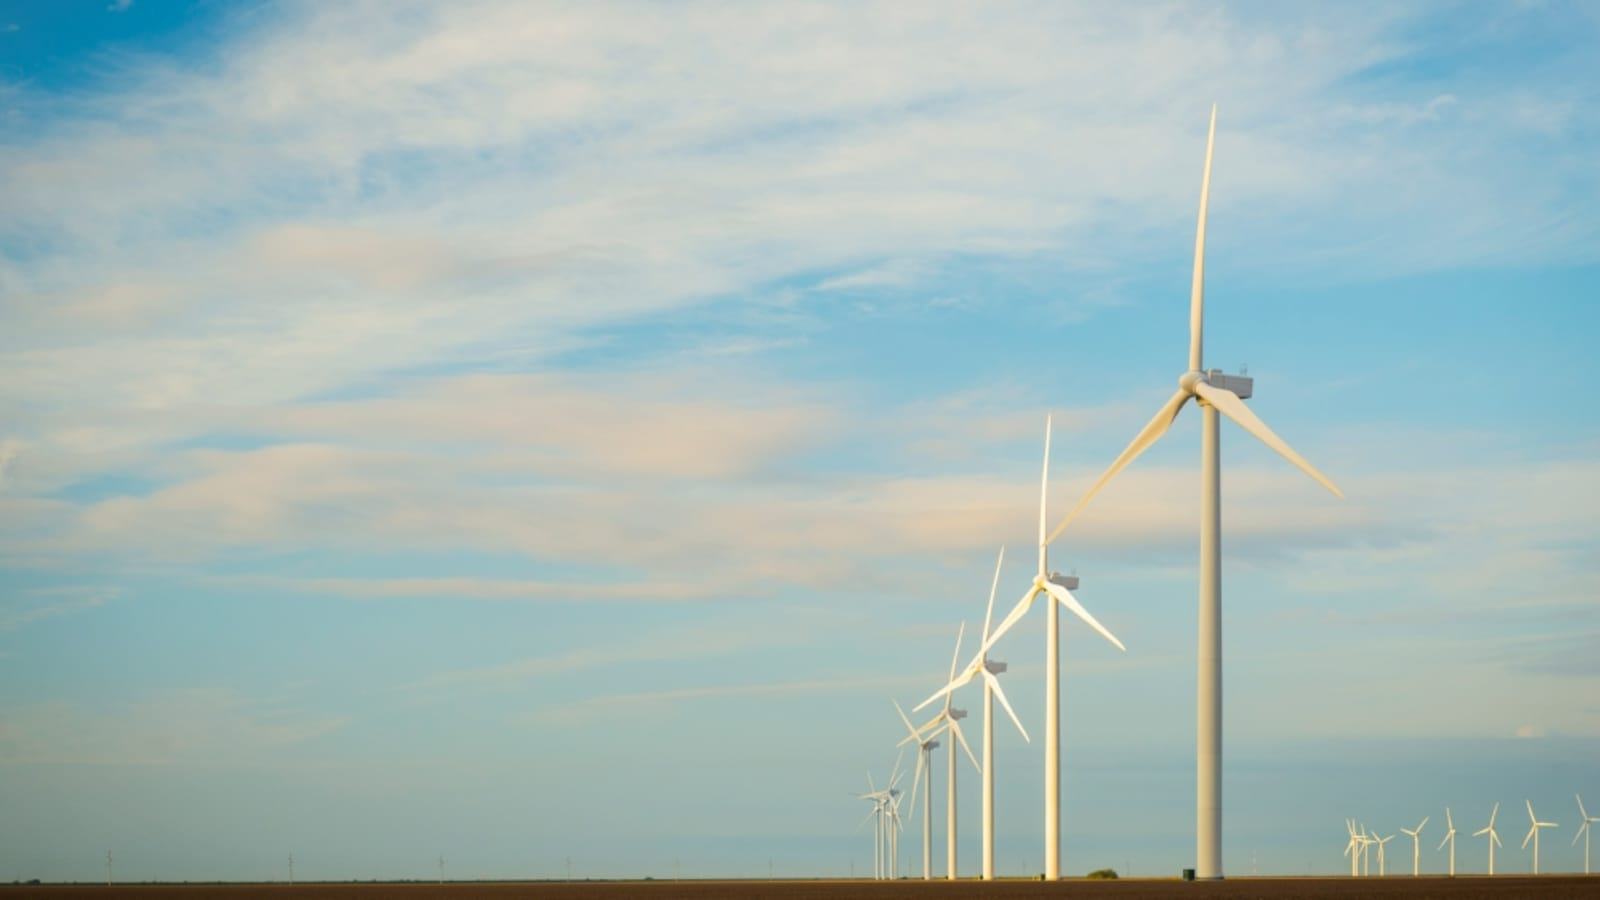 Texan Wind Power Grows Again As Huge Turbines Start Spinning